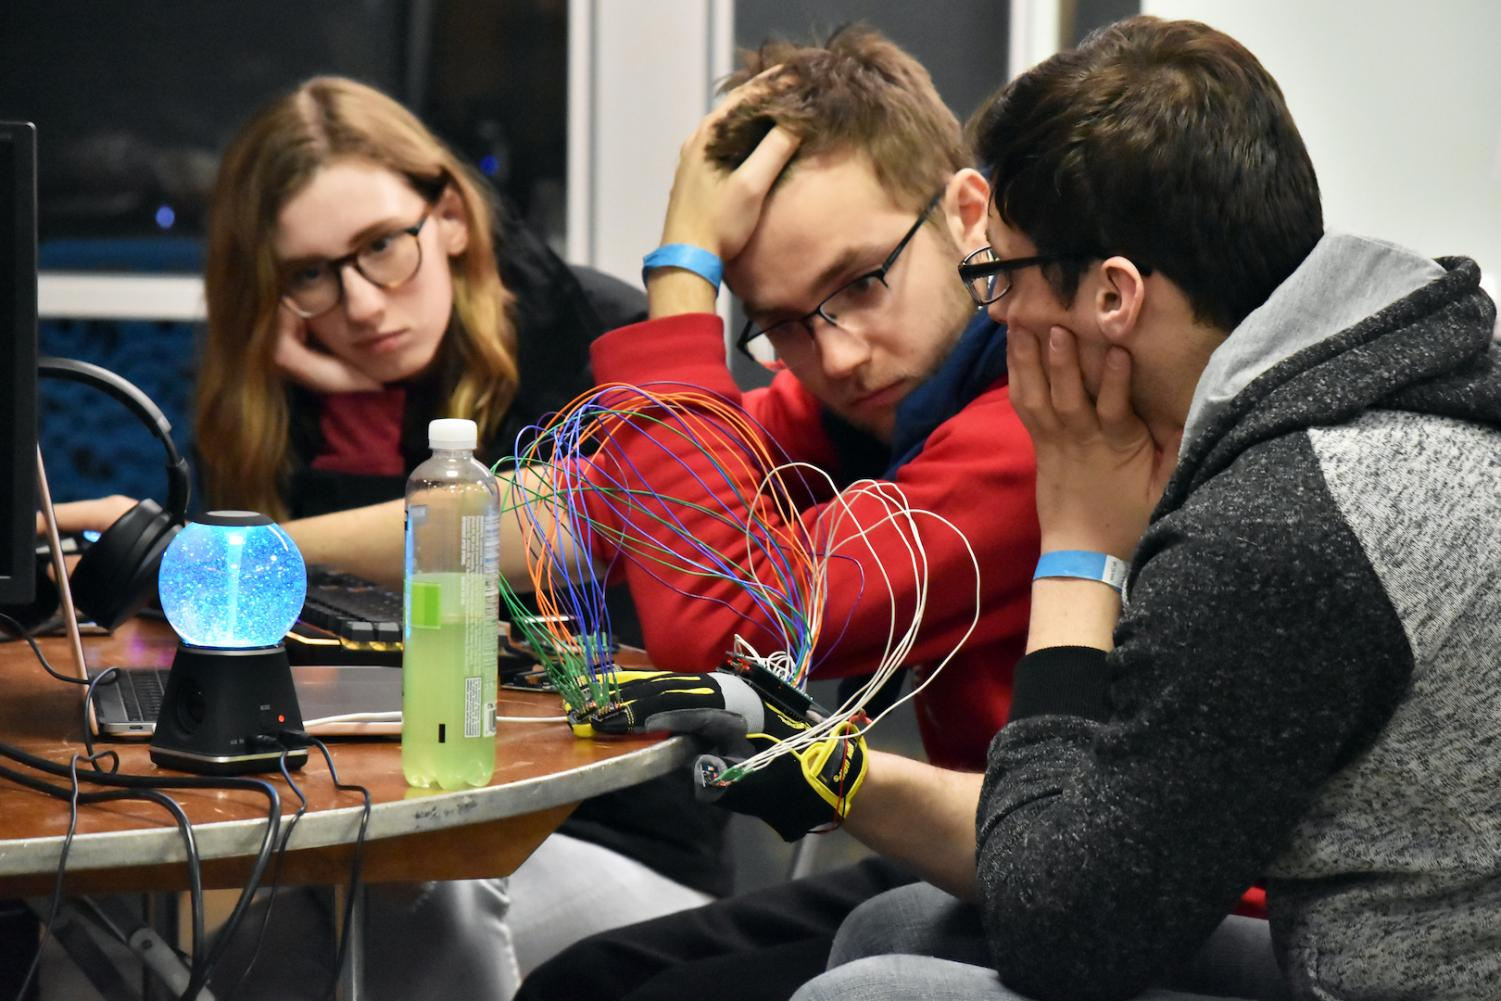 HackCWRU brought together more than 350 students for a 36-hour coding and engineering competition. Participants developed technological skills from four categories: finance, civic, health or maker.